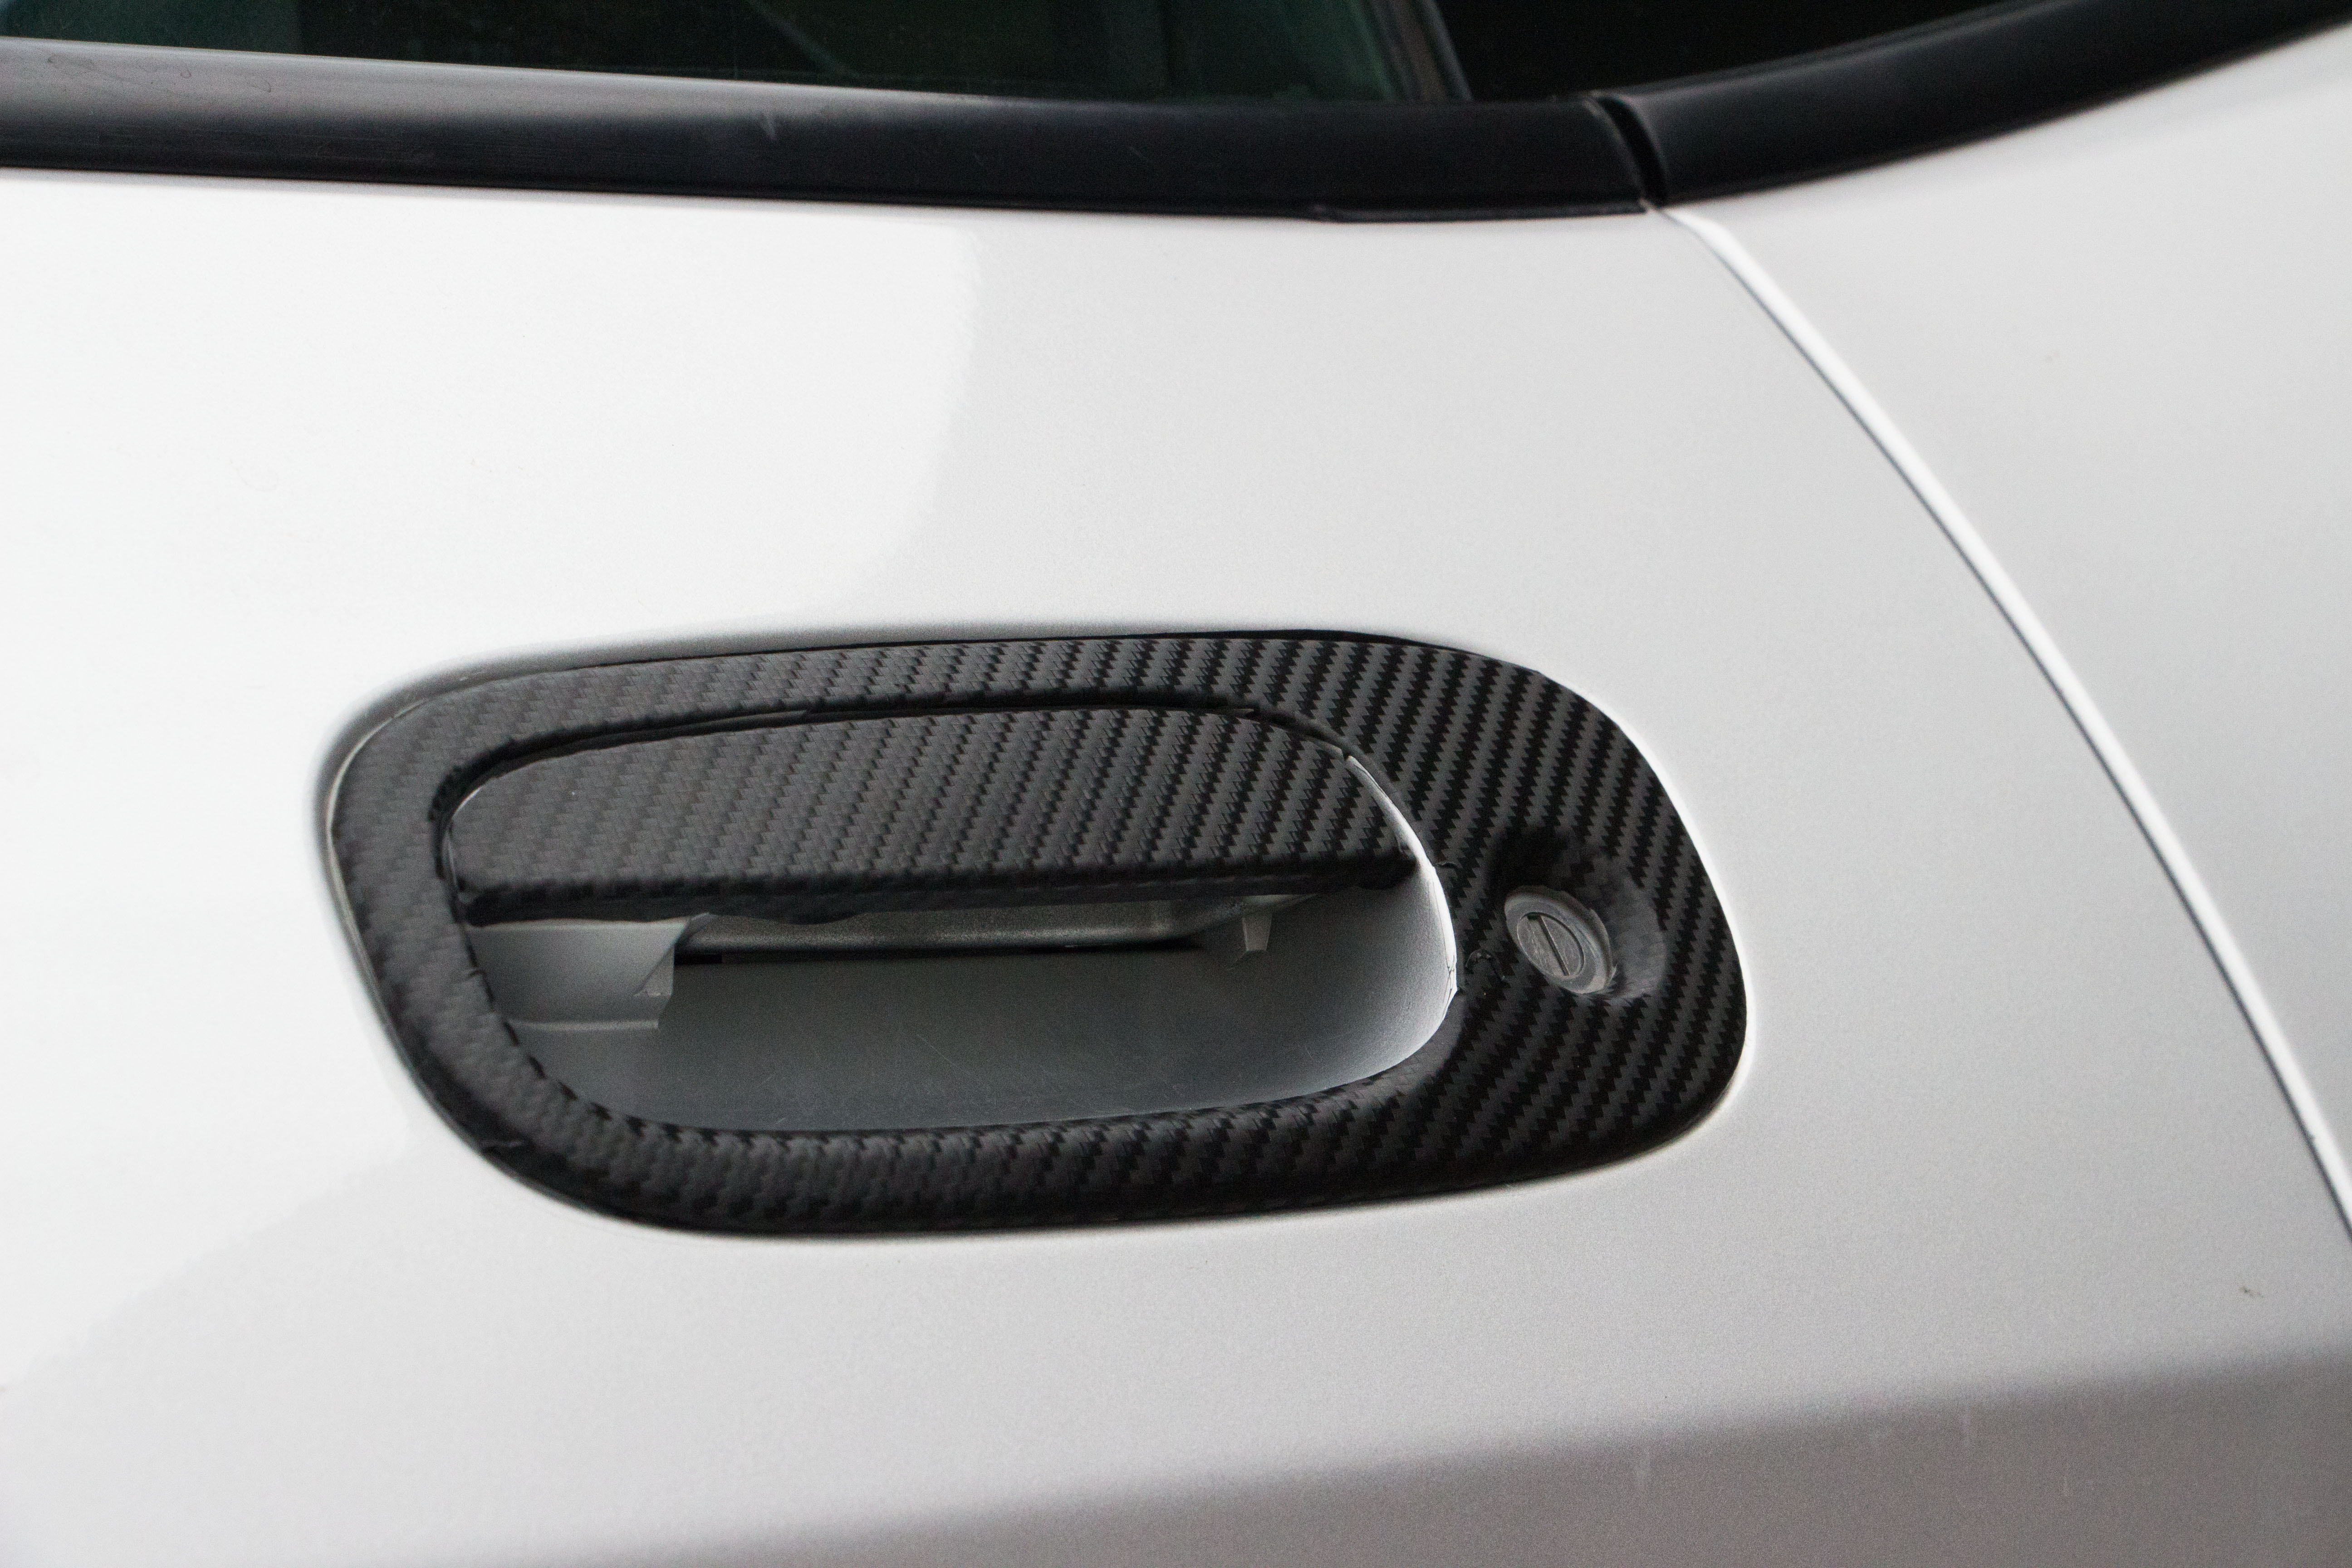 Charger Handle